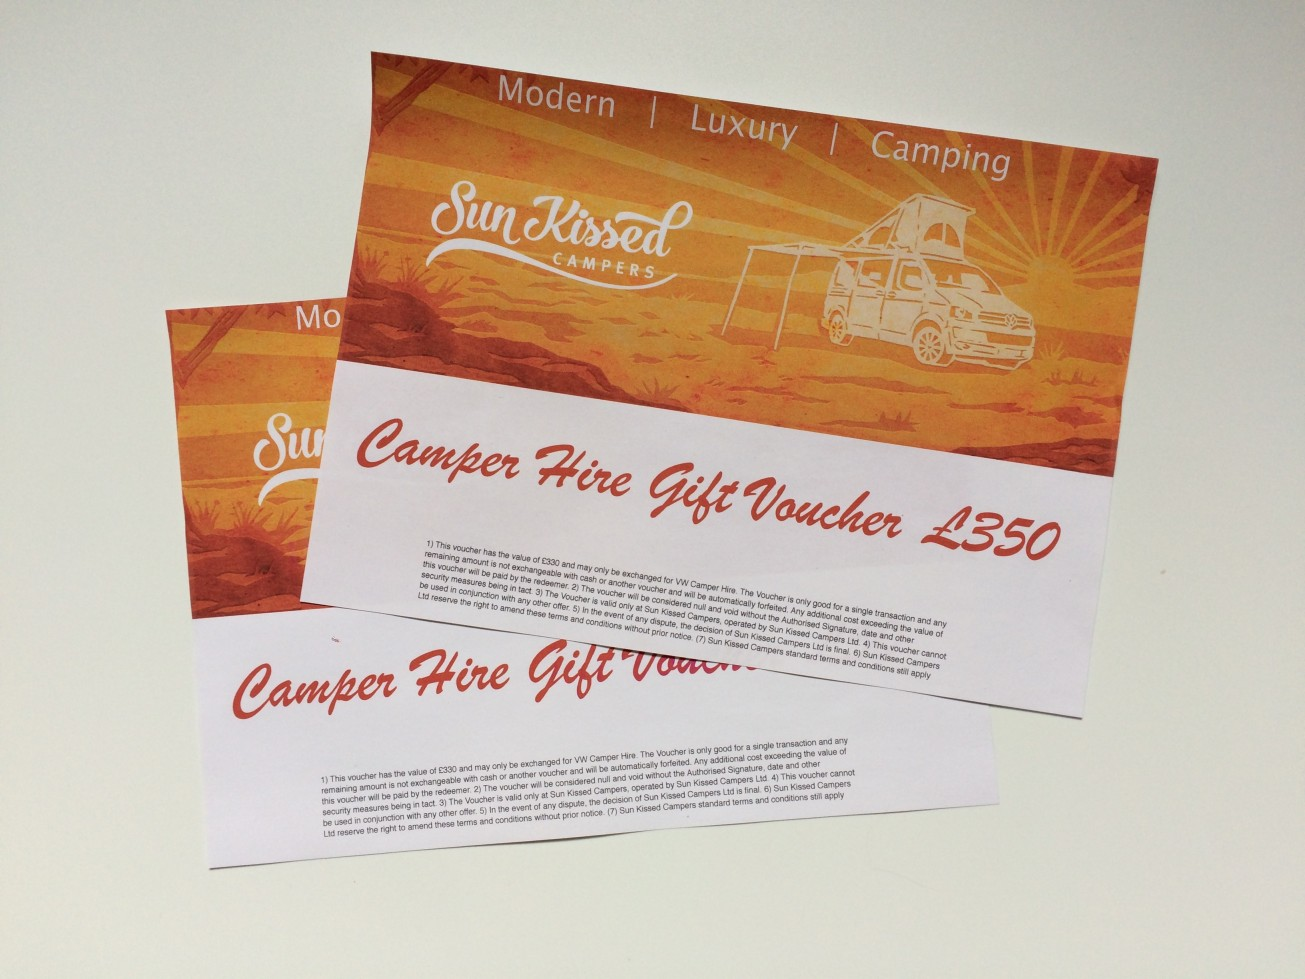 Campervan Hire Gift Vouchers by Sun Kissed Campers